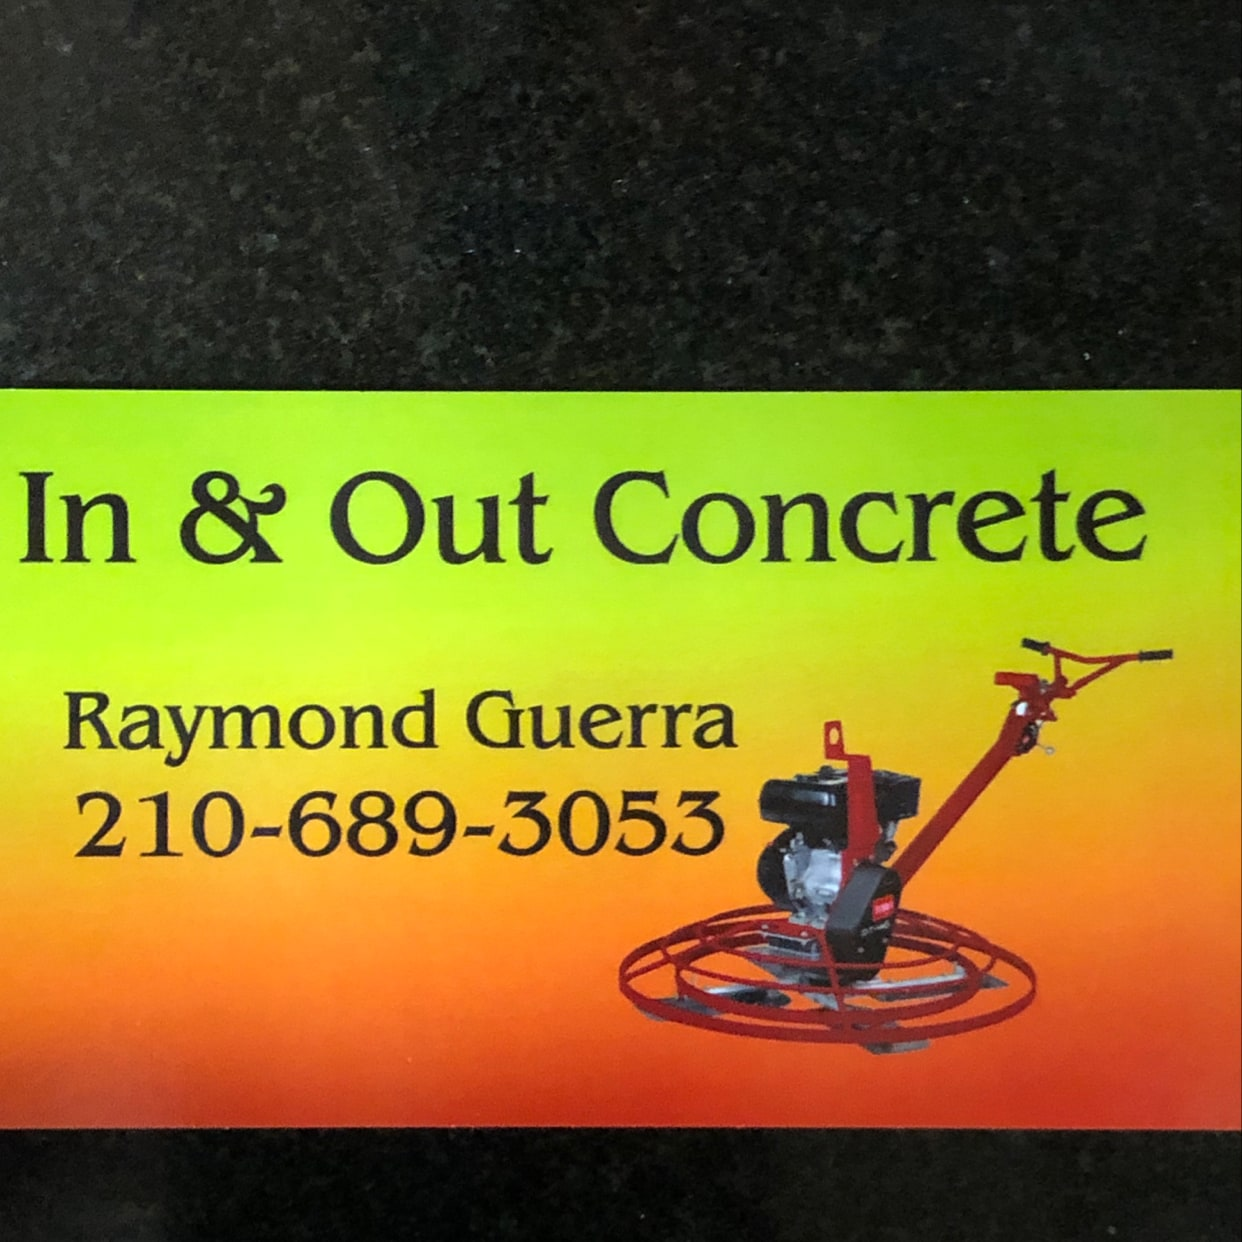 In and out concrete